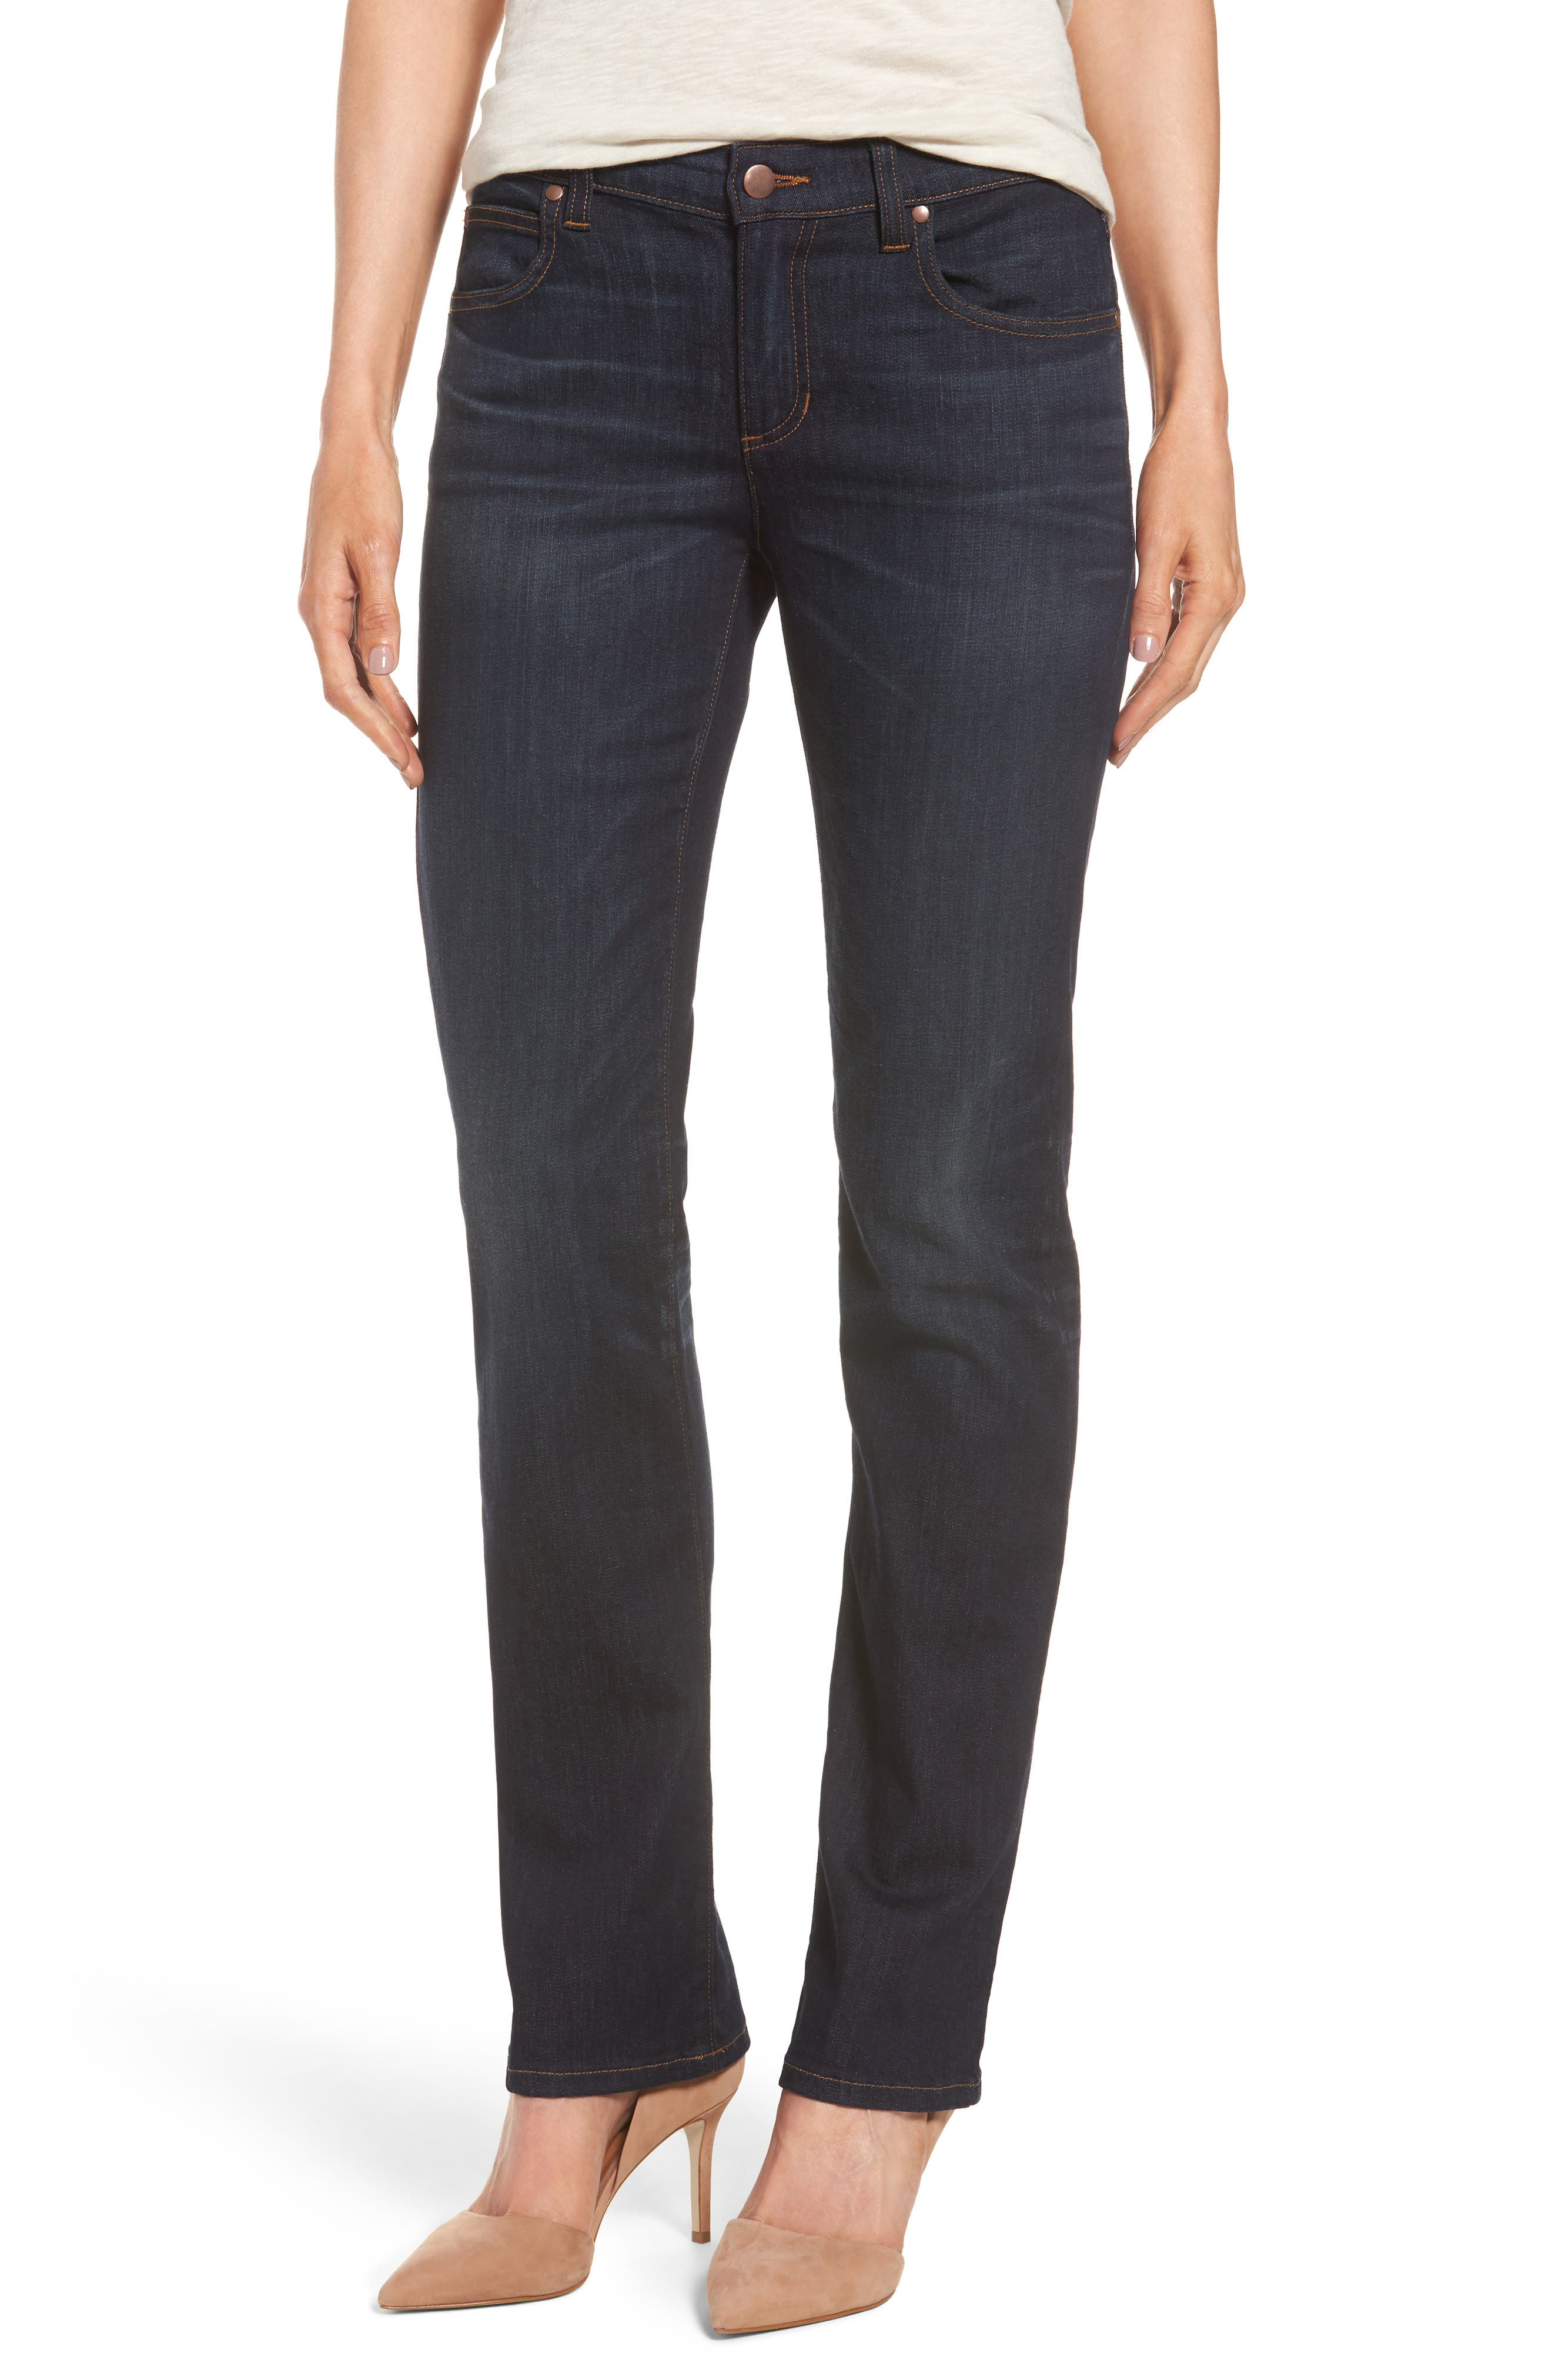 Eileen Fisher Straight Leg Stretch Jeans (Regular & Petite)